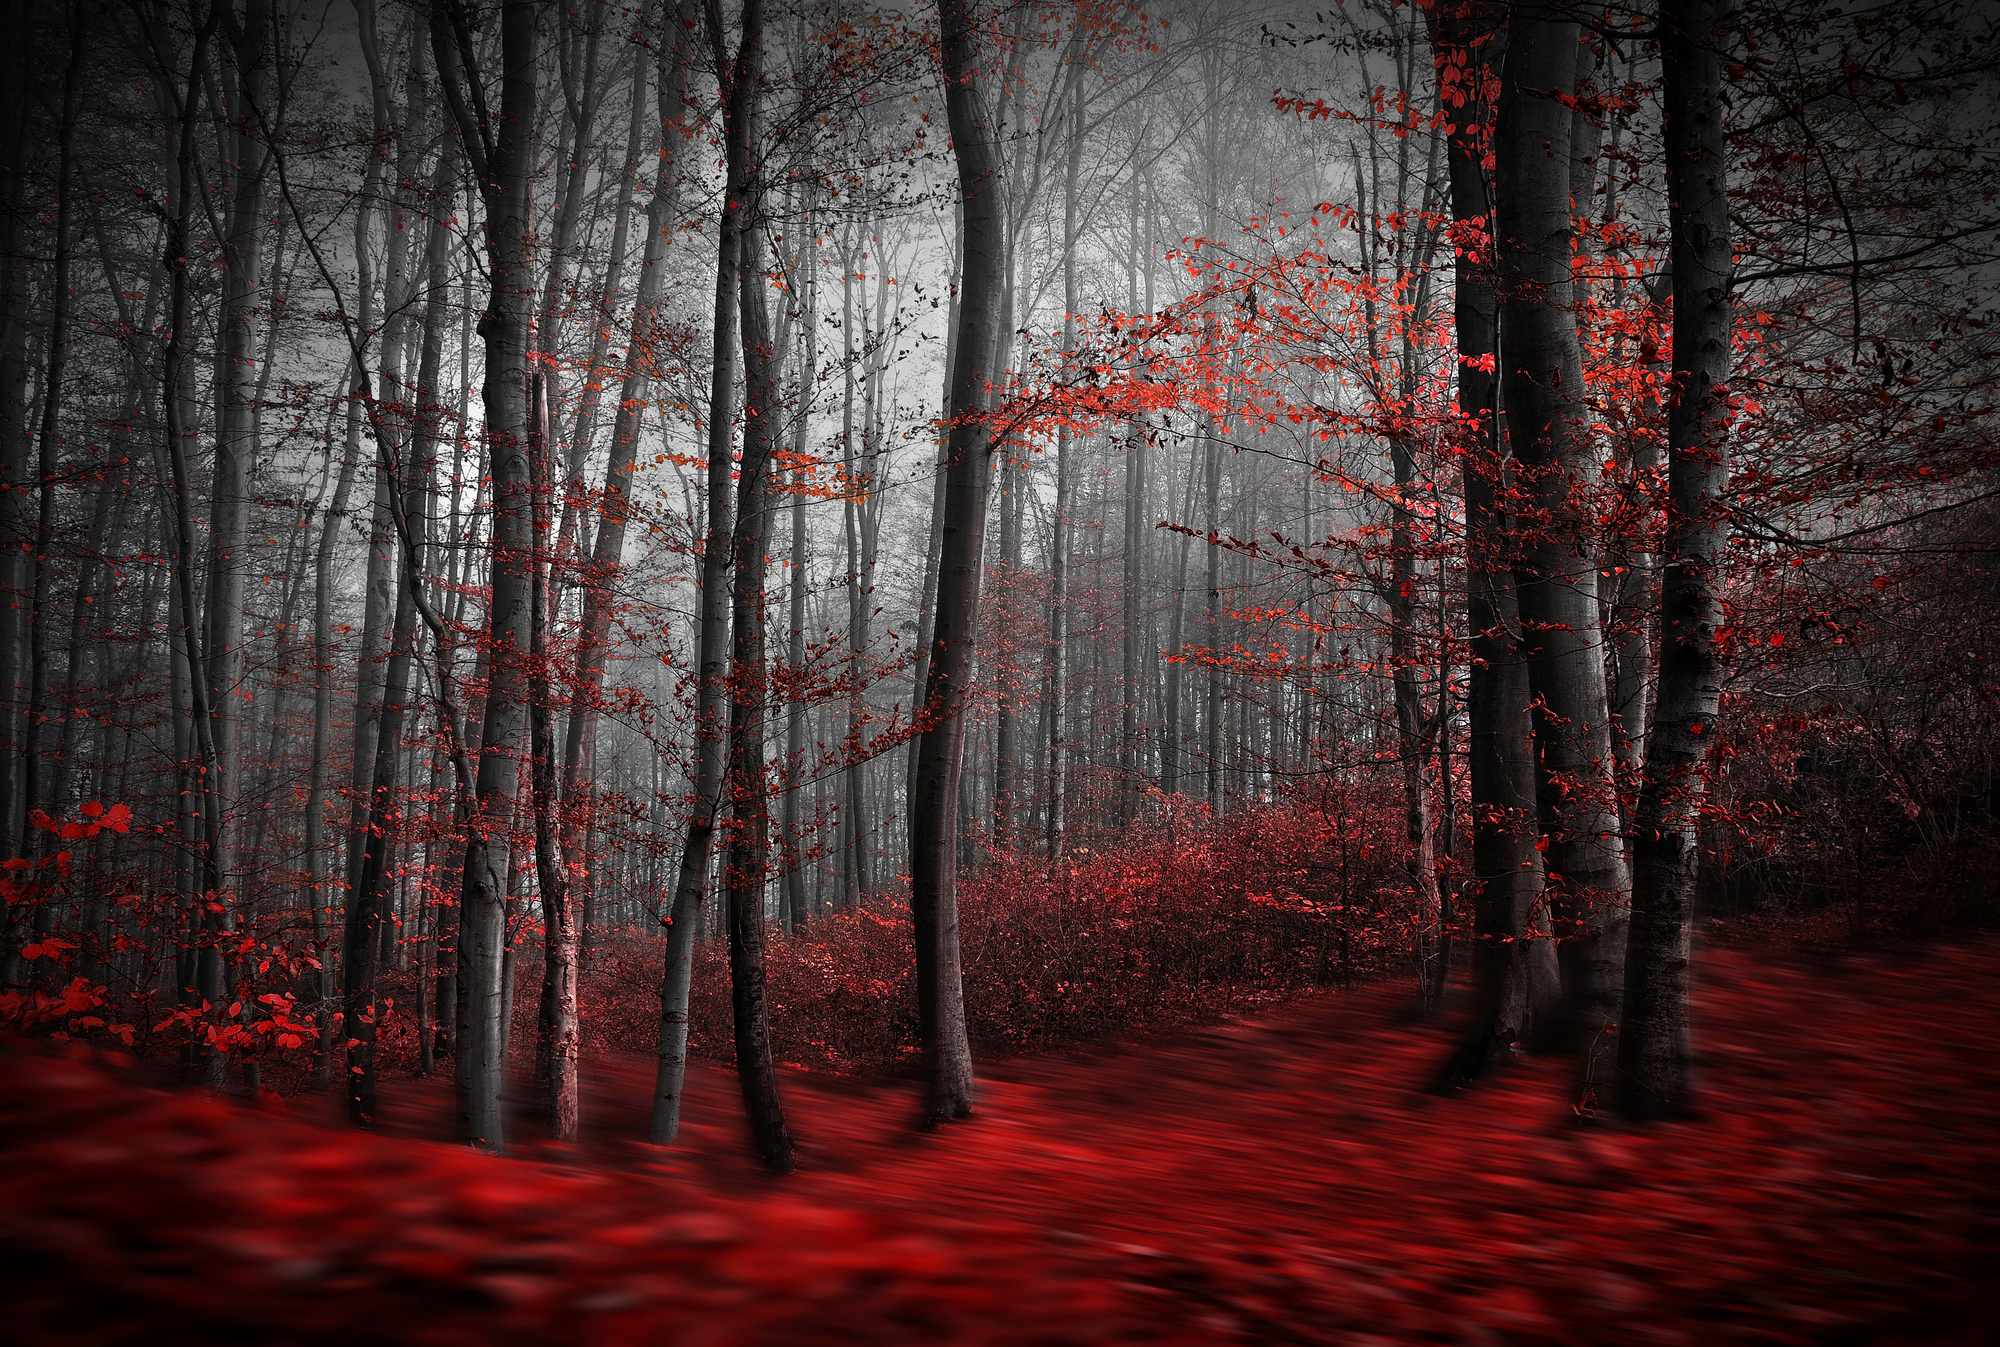 Forest Wall Mural red carpet forest wall mural & red carpet forest wallpaper